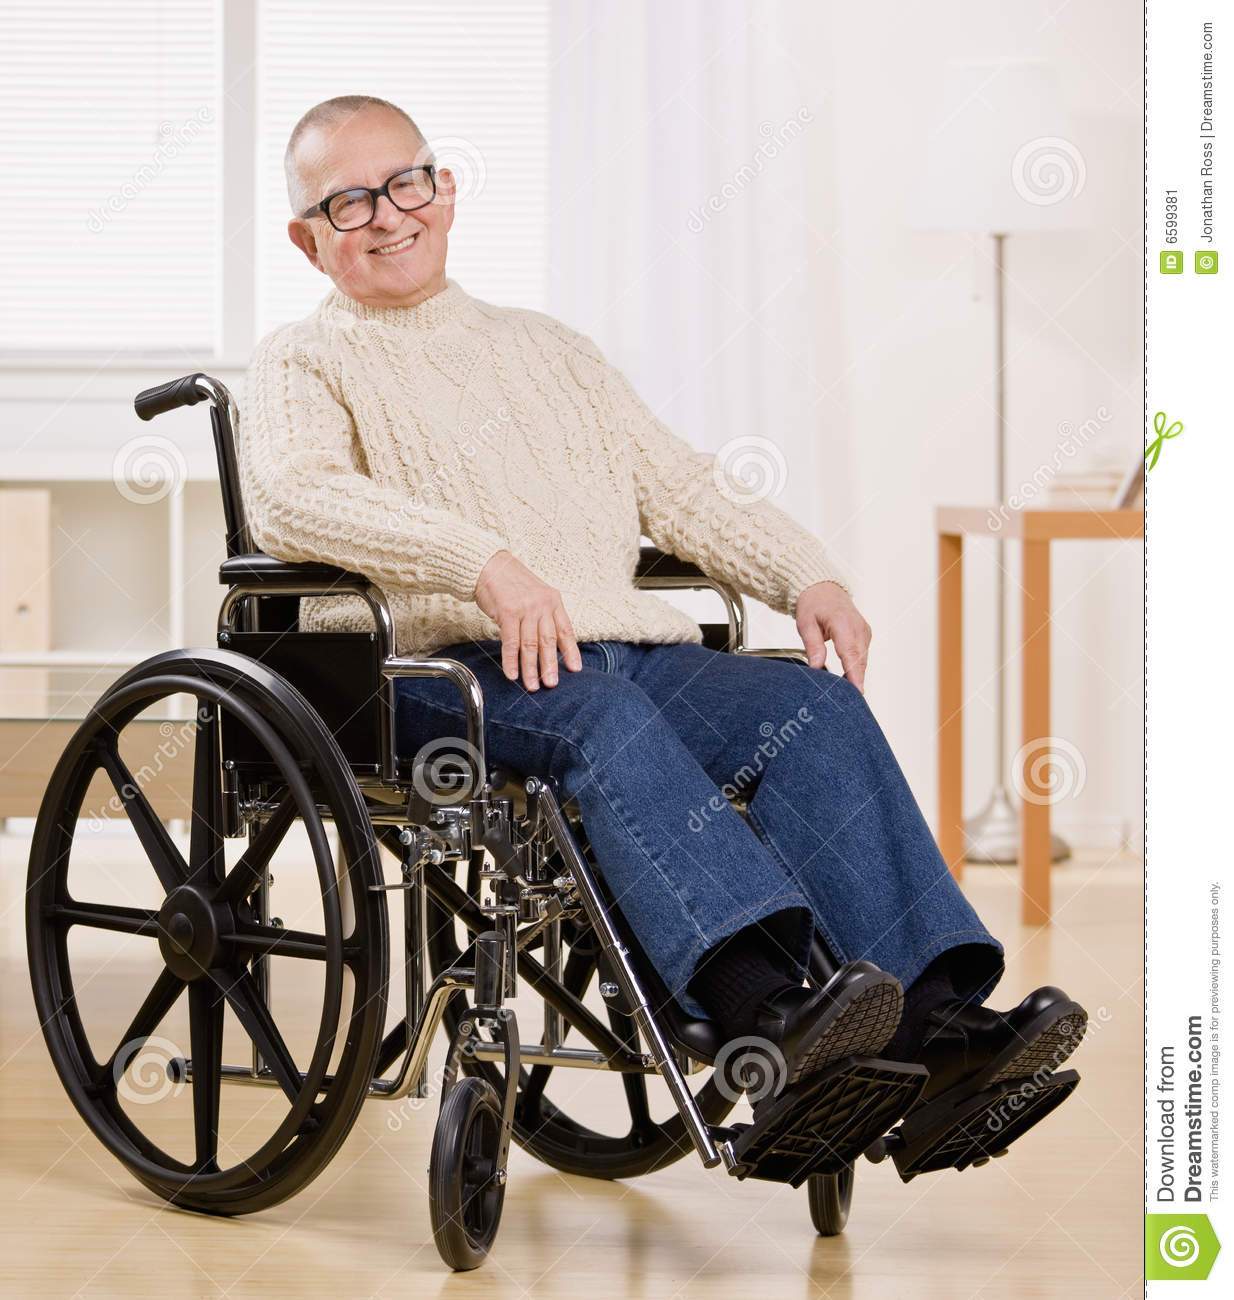 wheelchair man dining chair covers jysk disabled in stock image of body 6599381